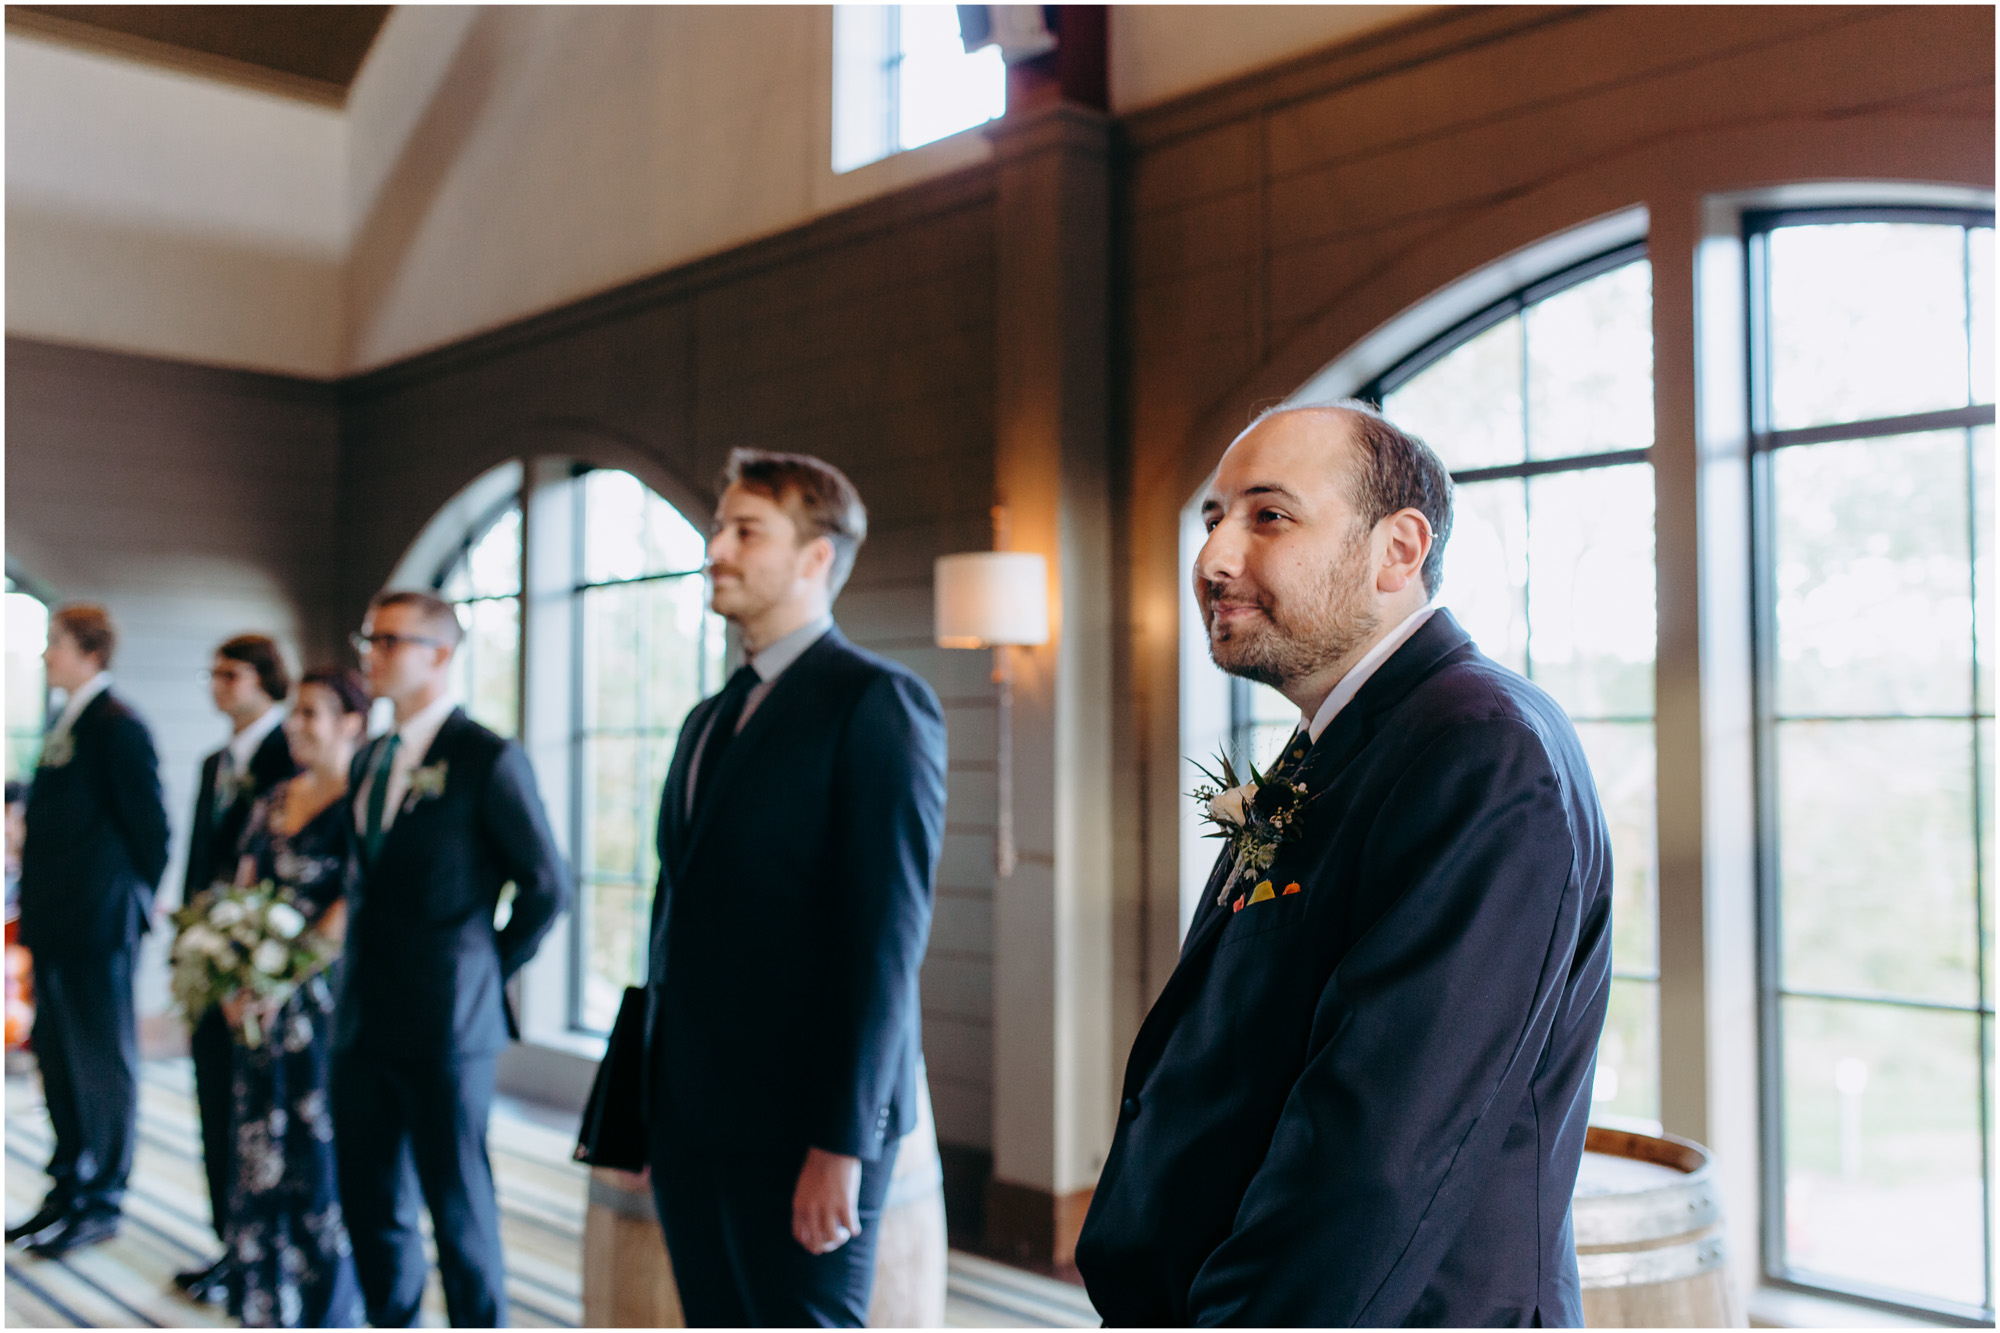 Groom and his groomsmen during ceremony - by Ashleigh Laureen Photography at LaBelle Winery in Amherst, New Hampshire